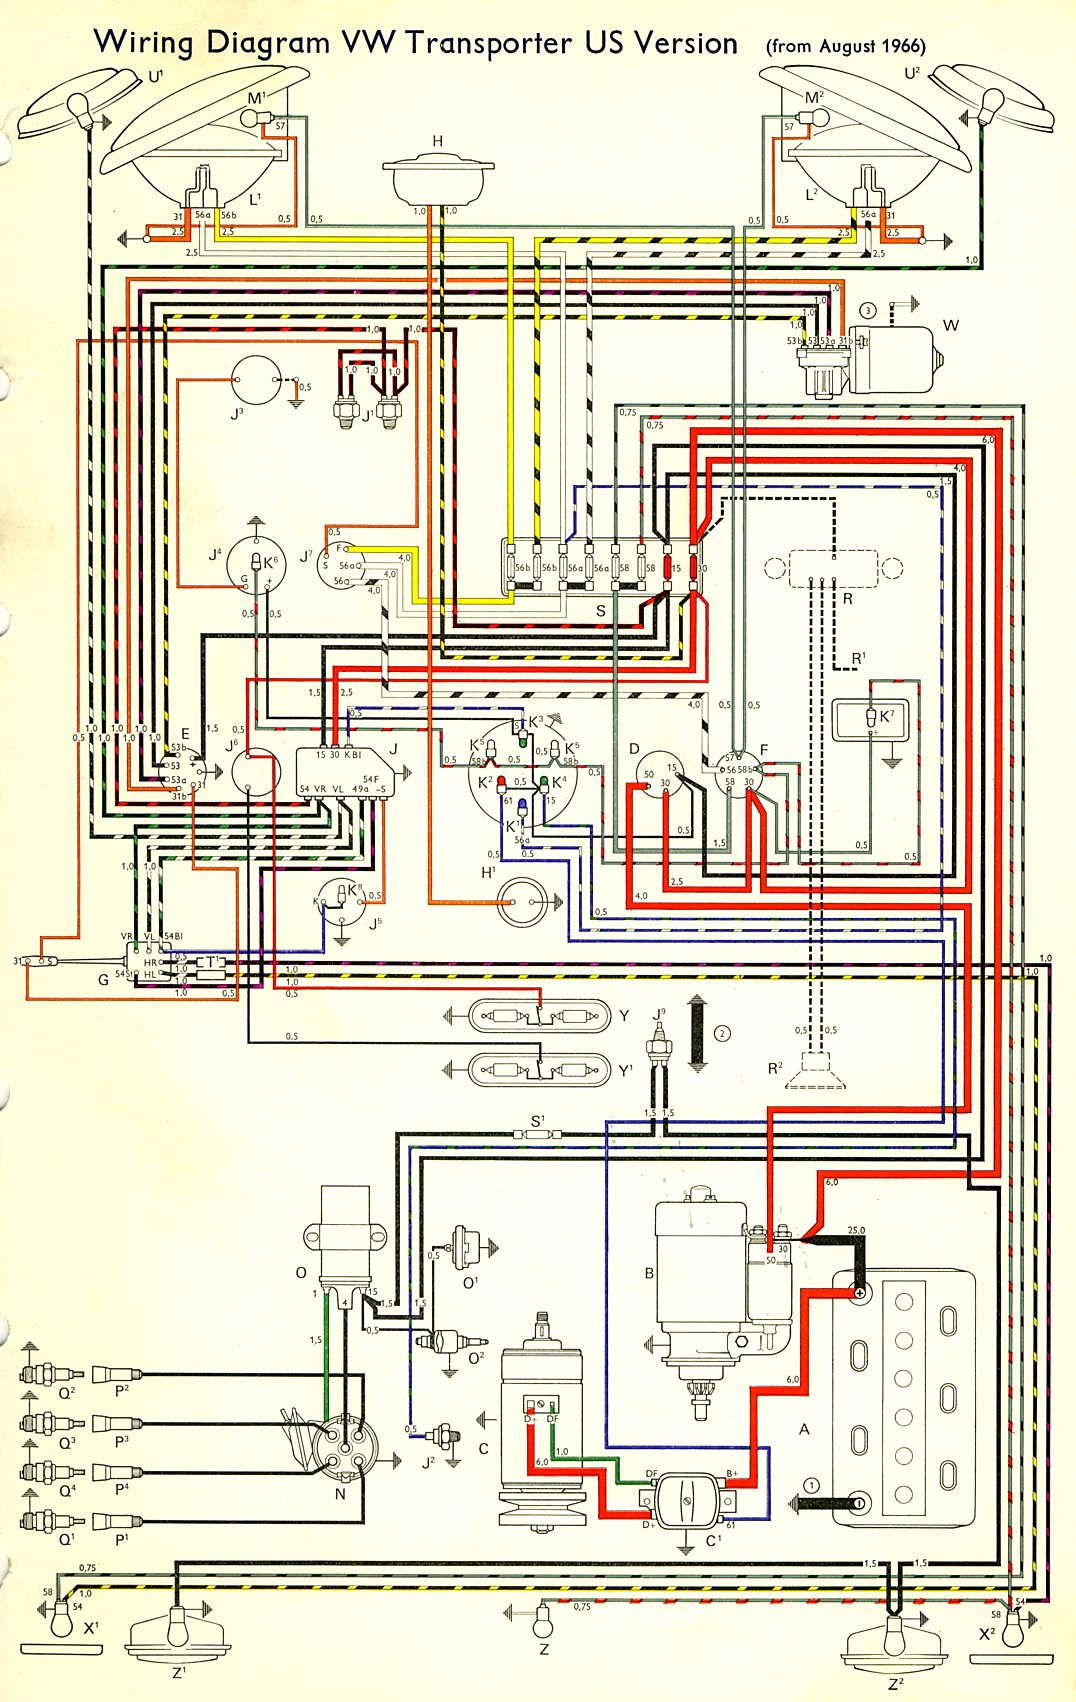 bus_67_USA 67 vw bus wiring harness 71 vw wiring harness \u2022 wiring diagrams vw type 3 wiring harness at alyssarenee.co